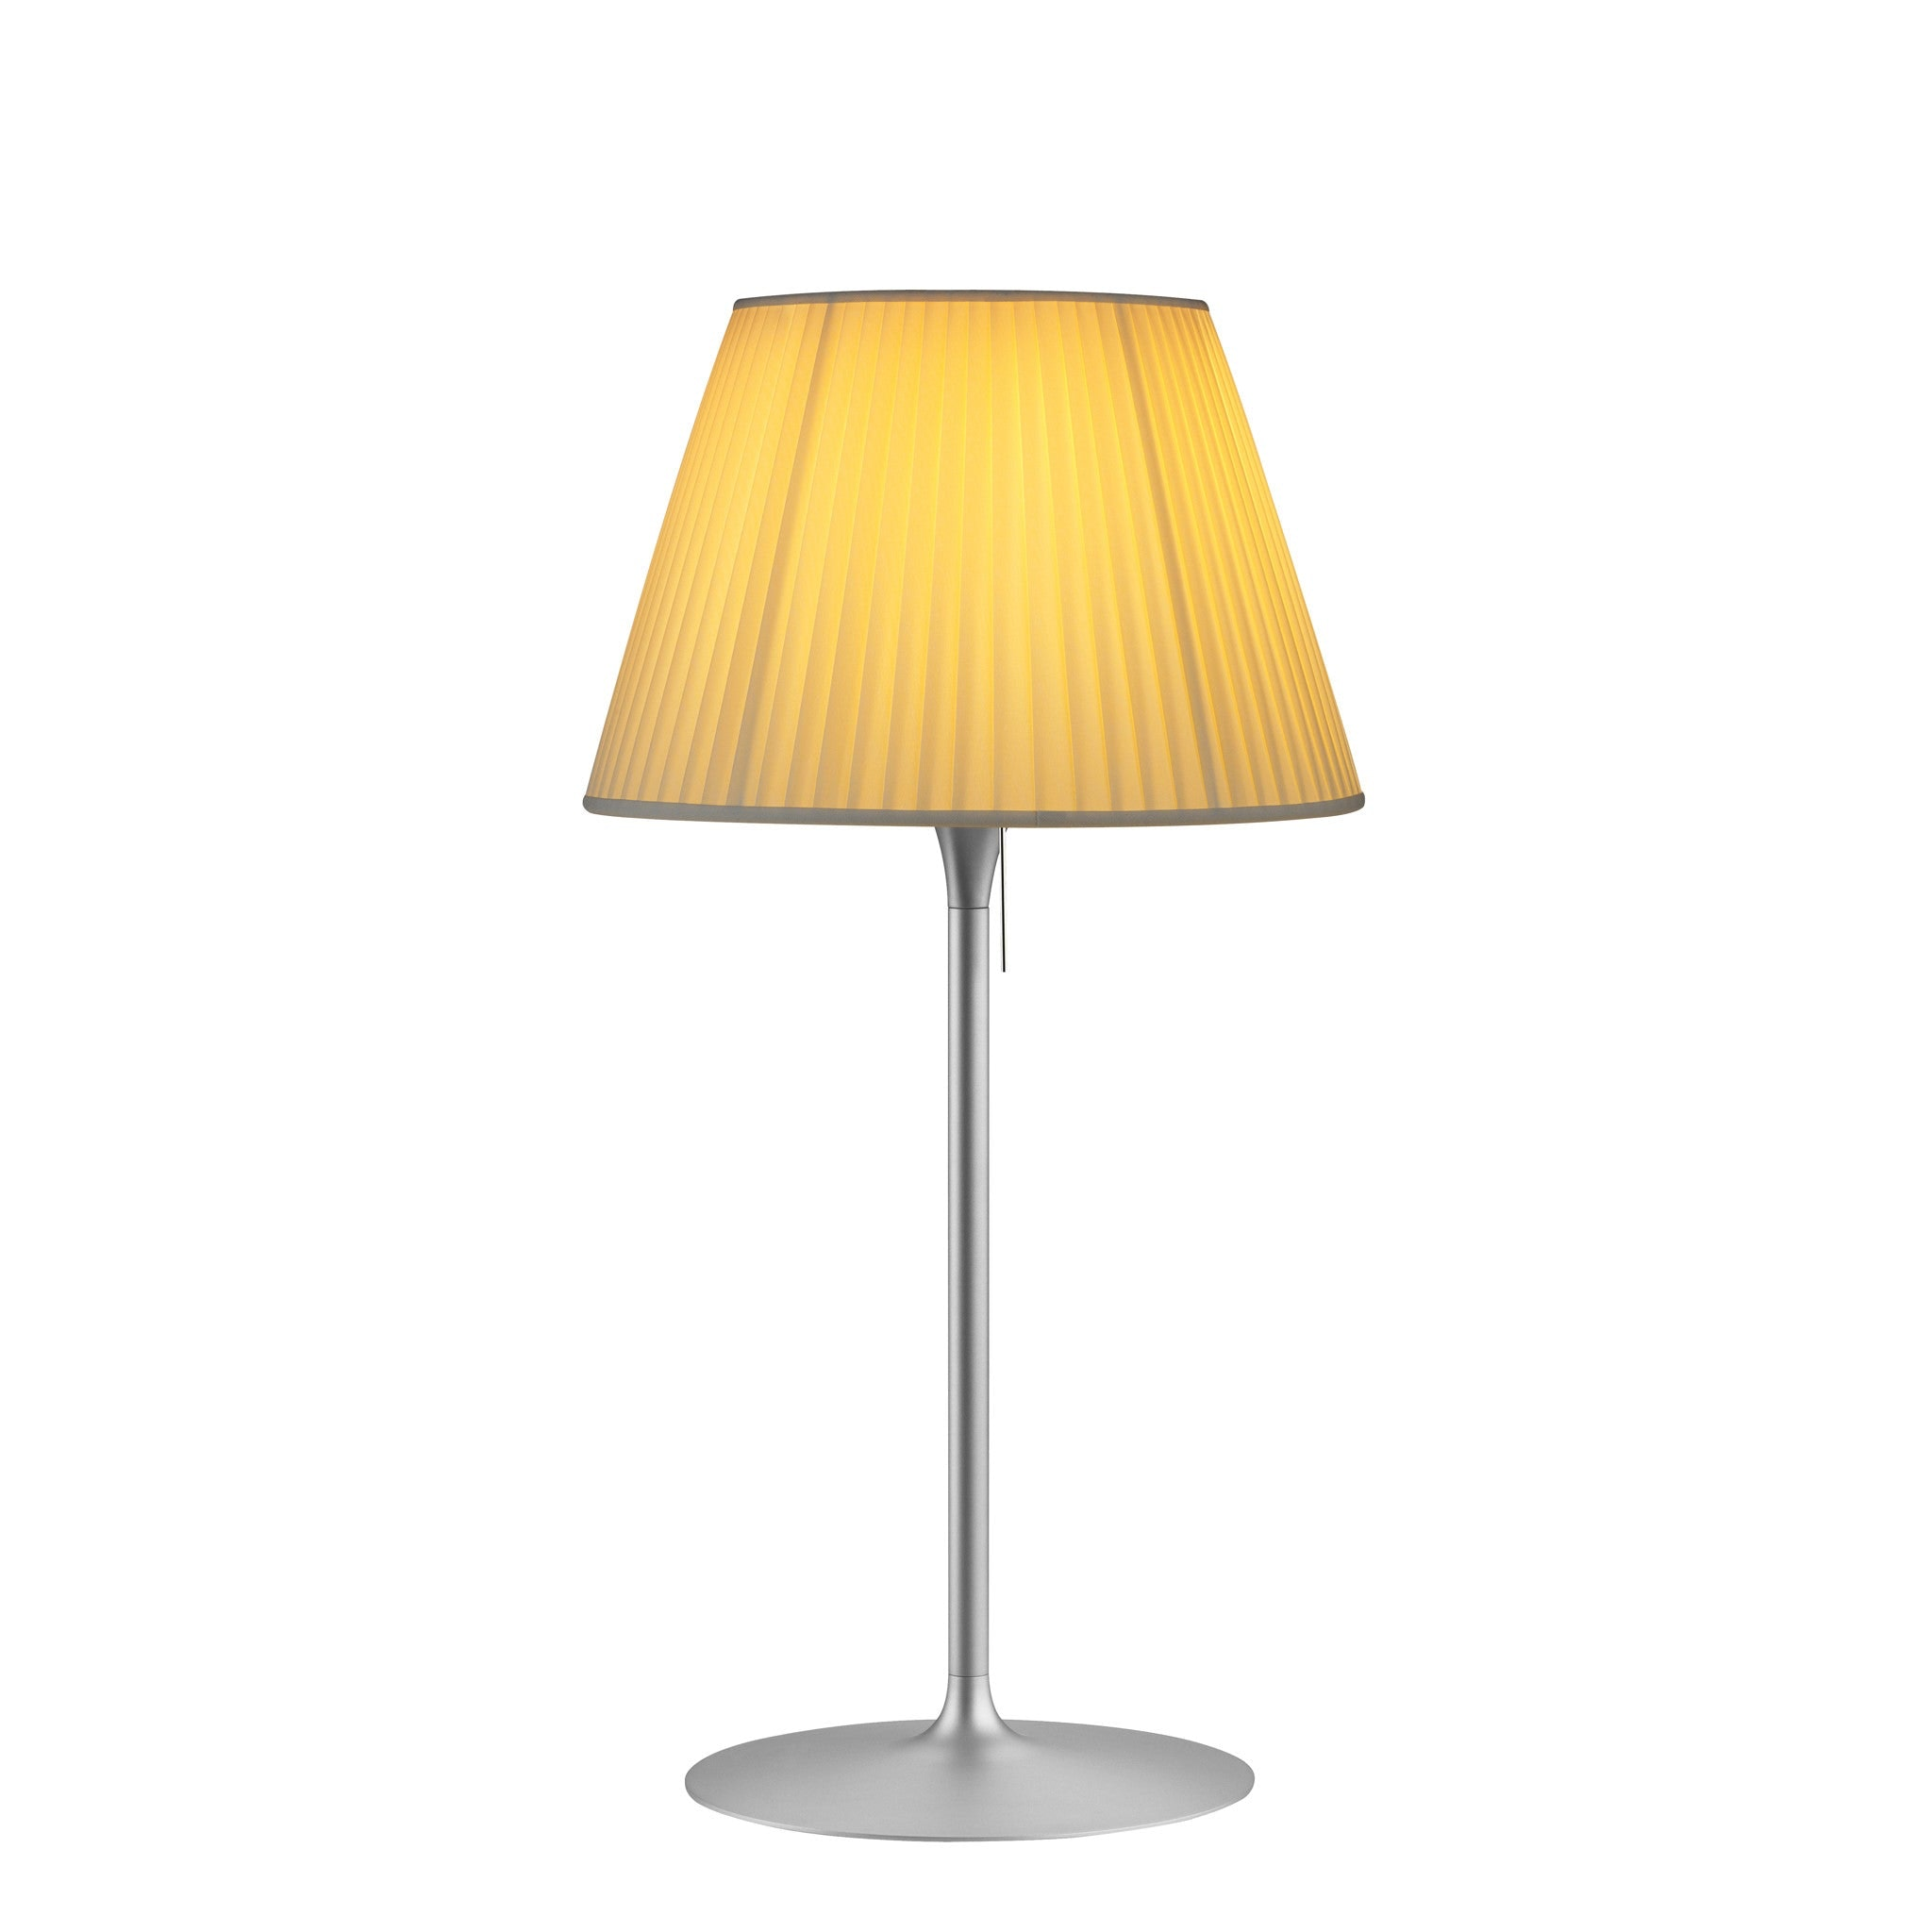 Romeo Soft Table Lamp by Philippe Starck